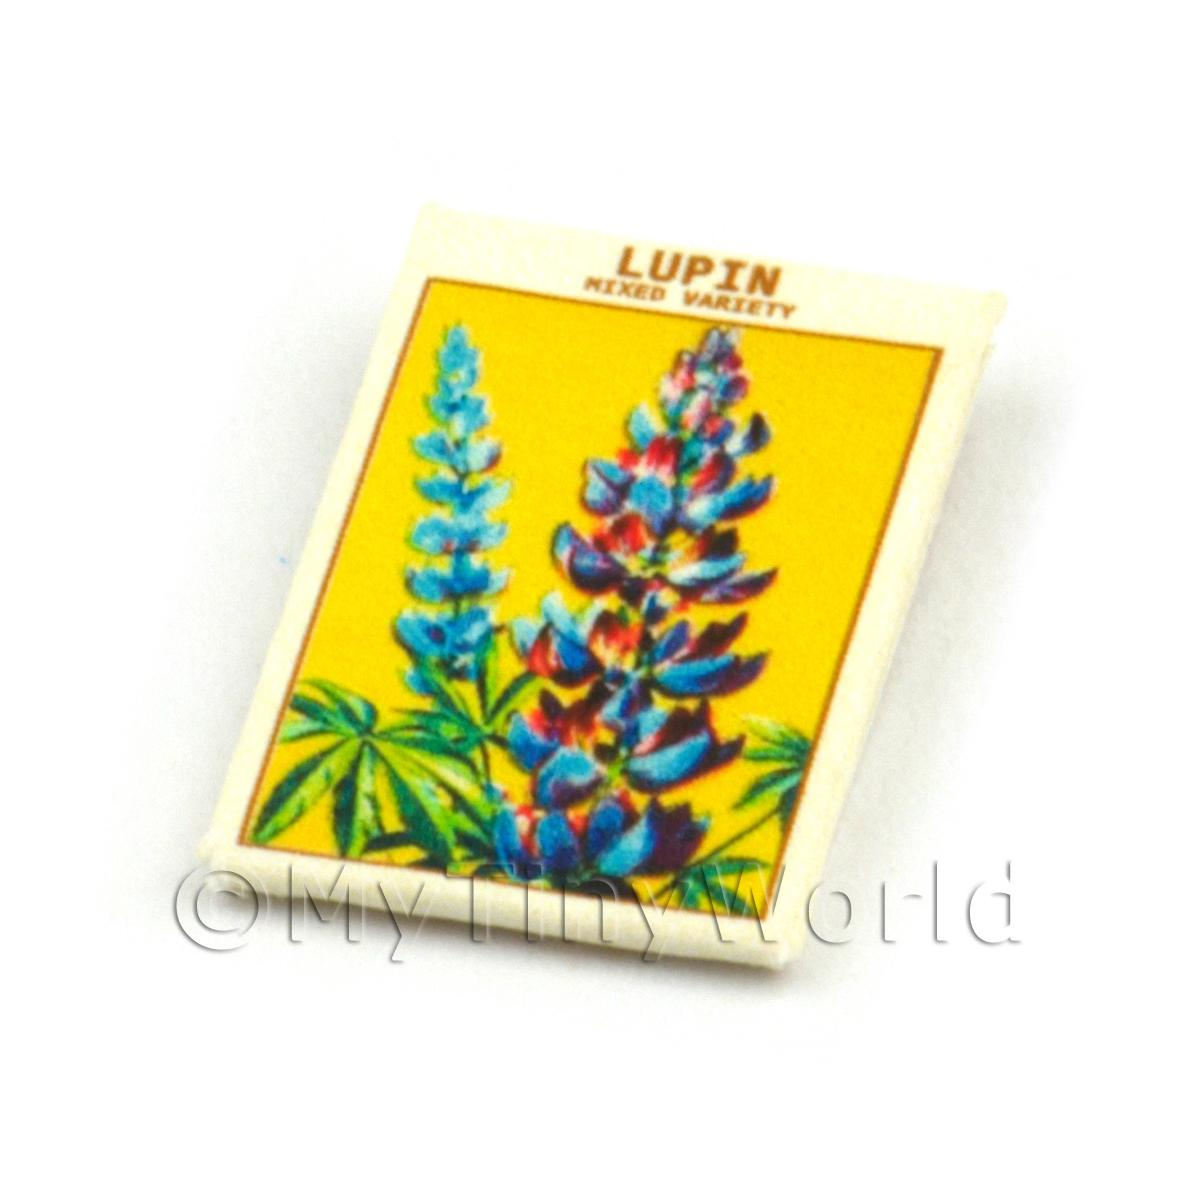 Dolls House Flower Seed Packet - Lupin